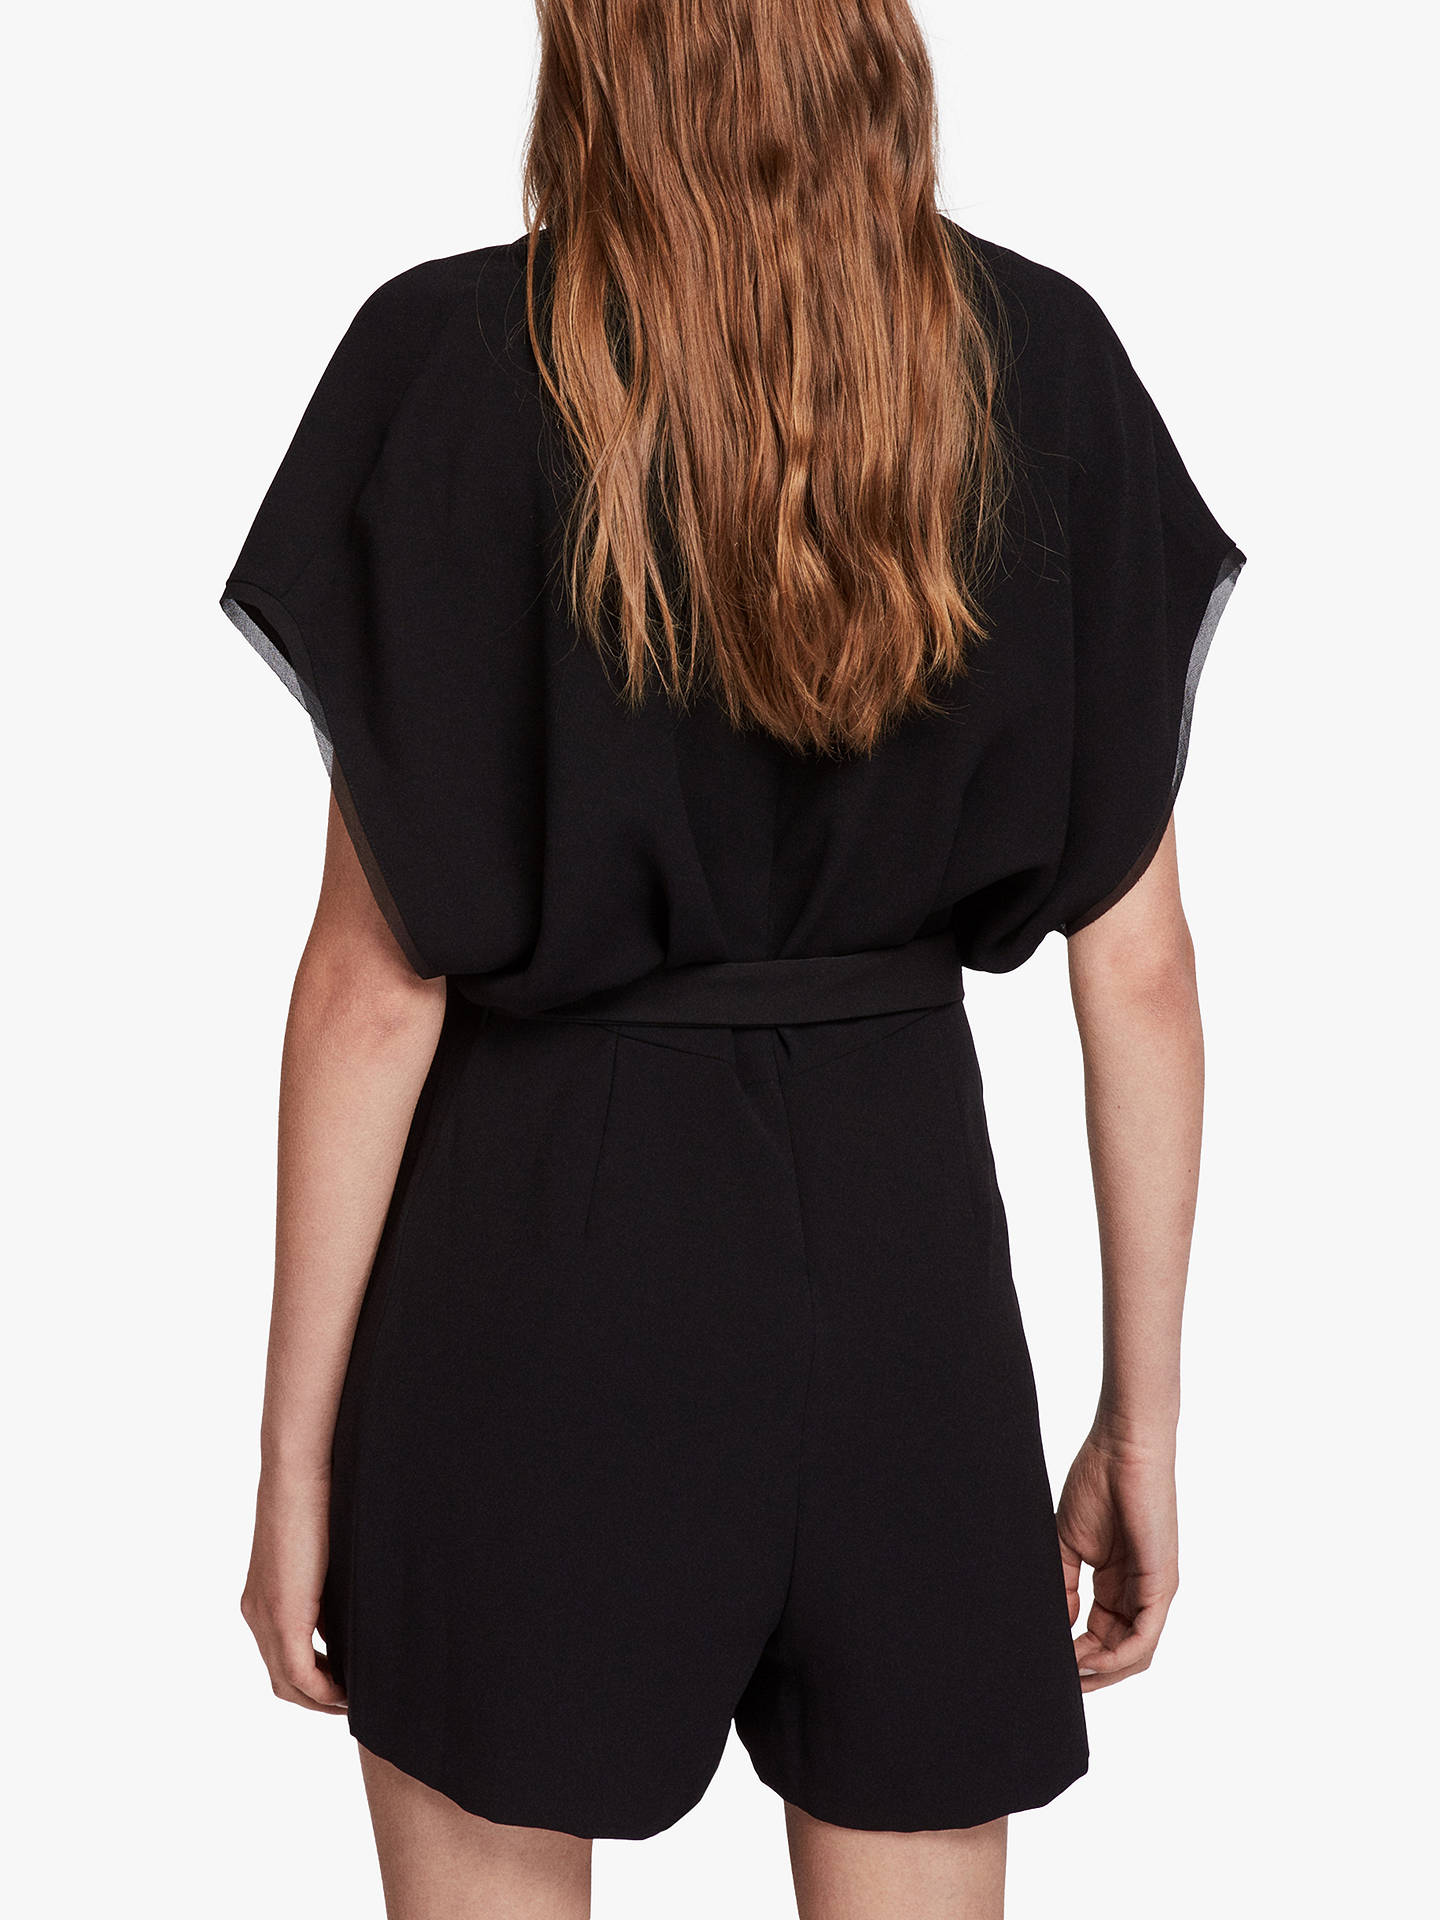 31abe1de7d75 ... Buy AllSaints Reid Short Sleeve Playsuit